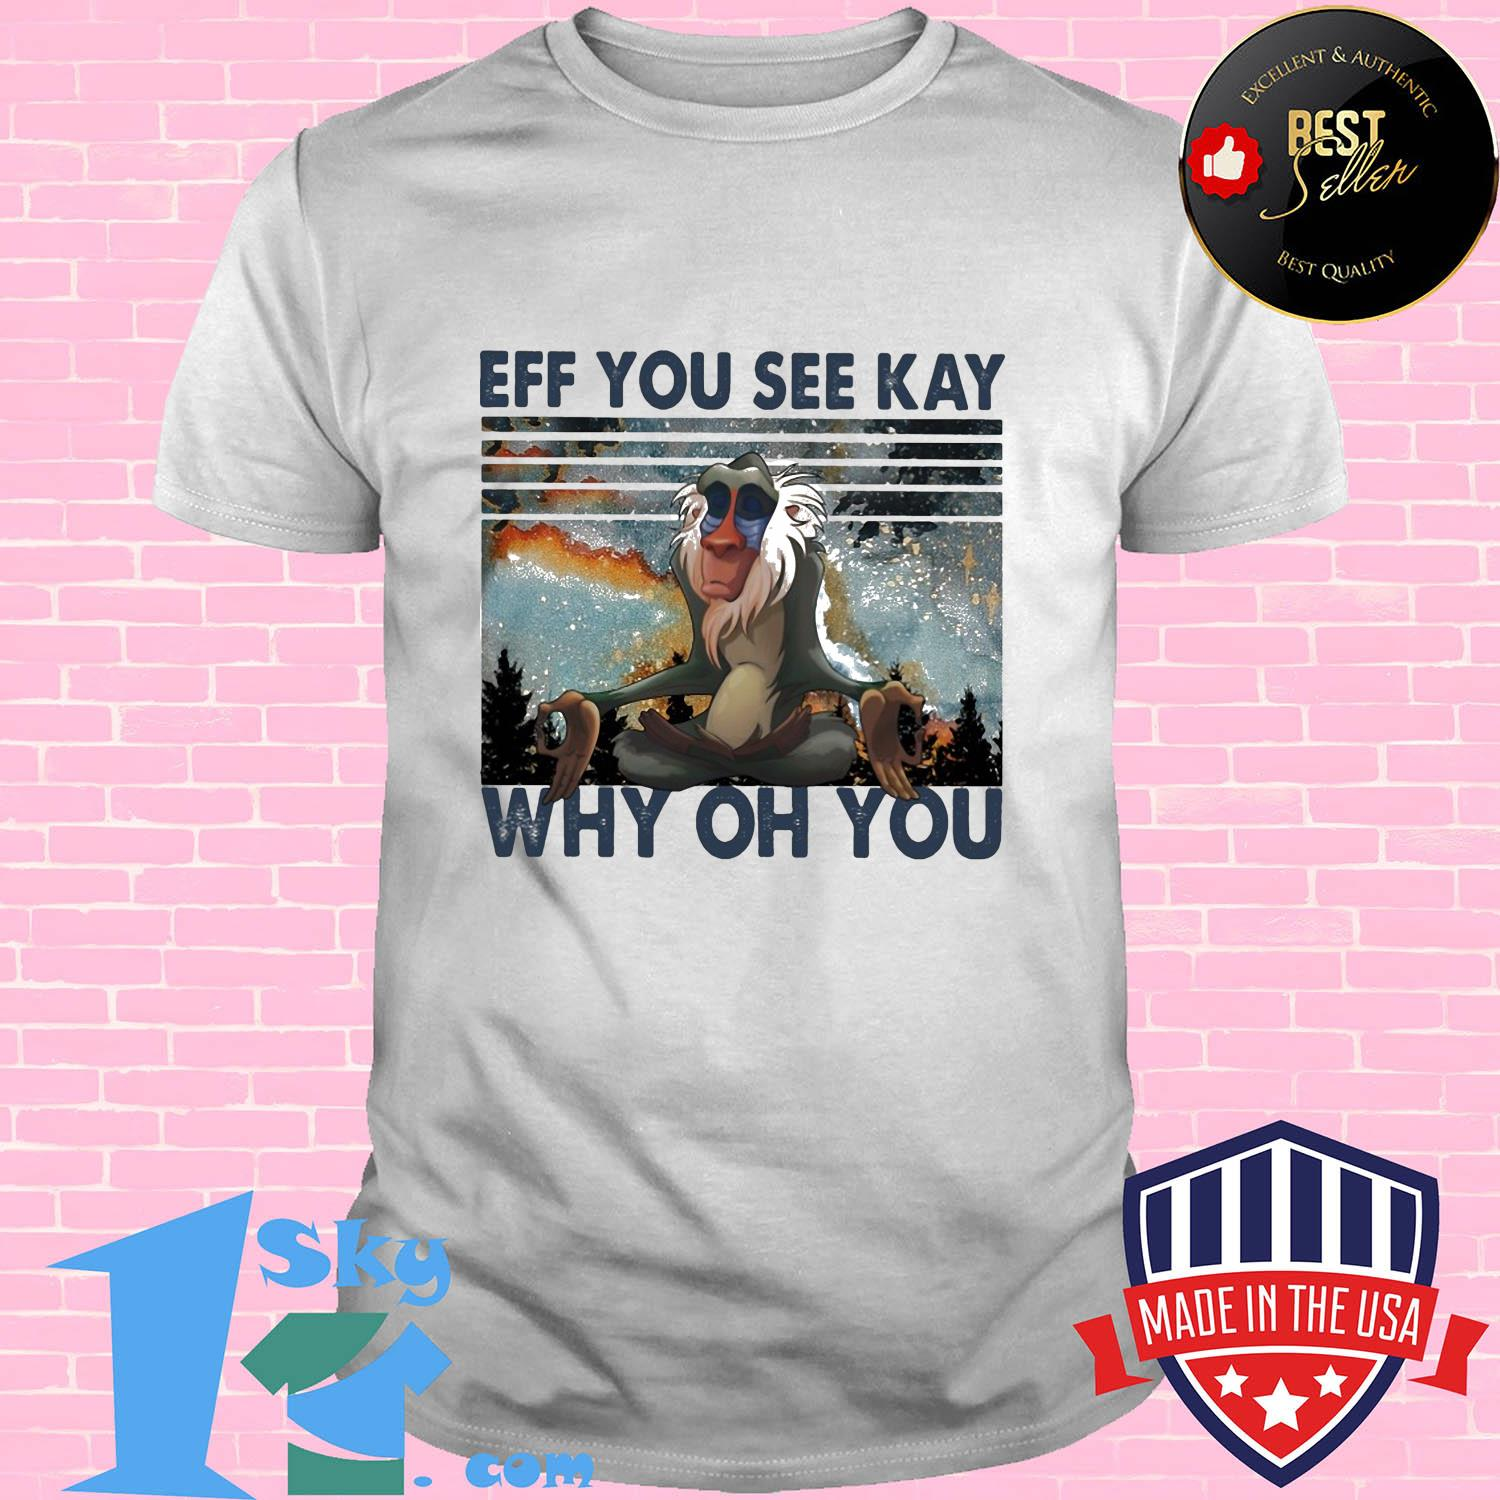 Eff you see kay why oh you vintage shirt